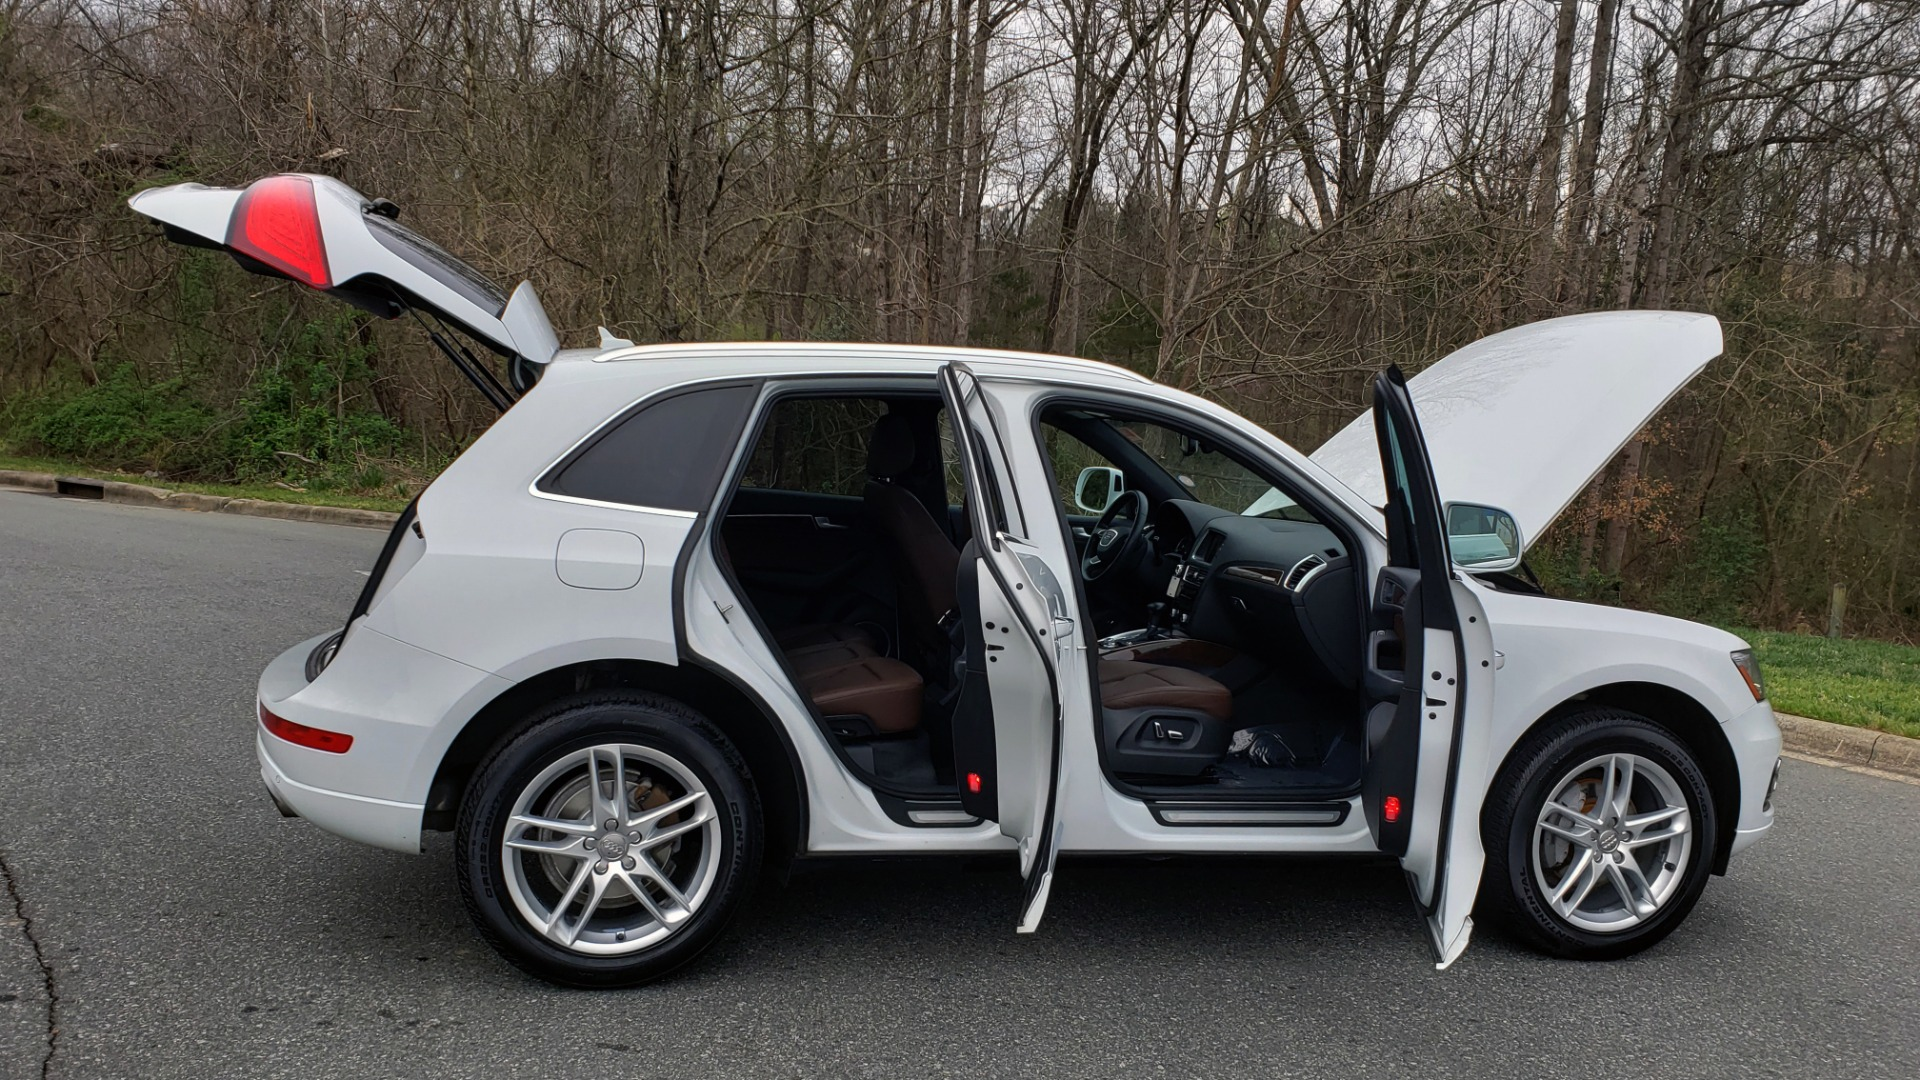 Used 2017 Audi Q5 PREMIUM PLUS / TECH / NAV / PANO-ROOF / B&O SND / REARVIEW for sale Sold at Formula Imports in Charlotte NC 28227 10